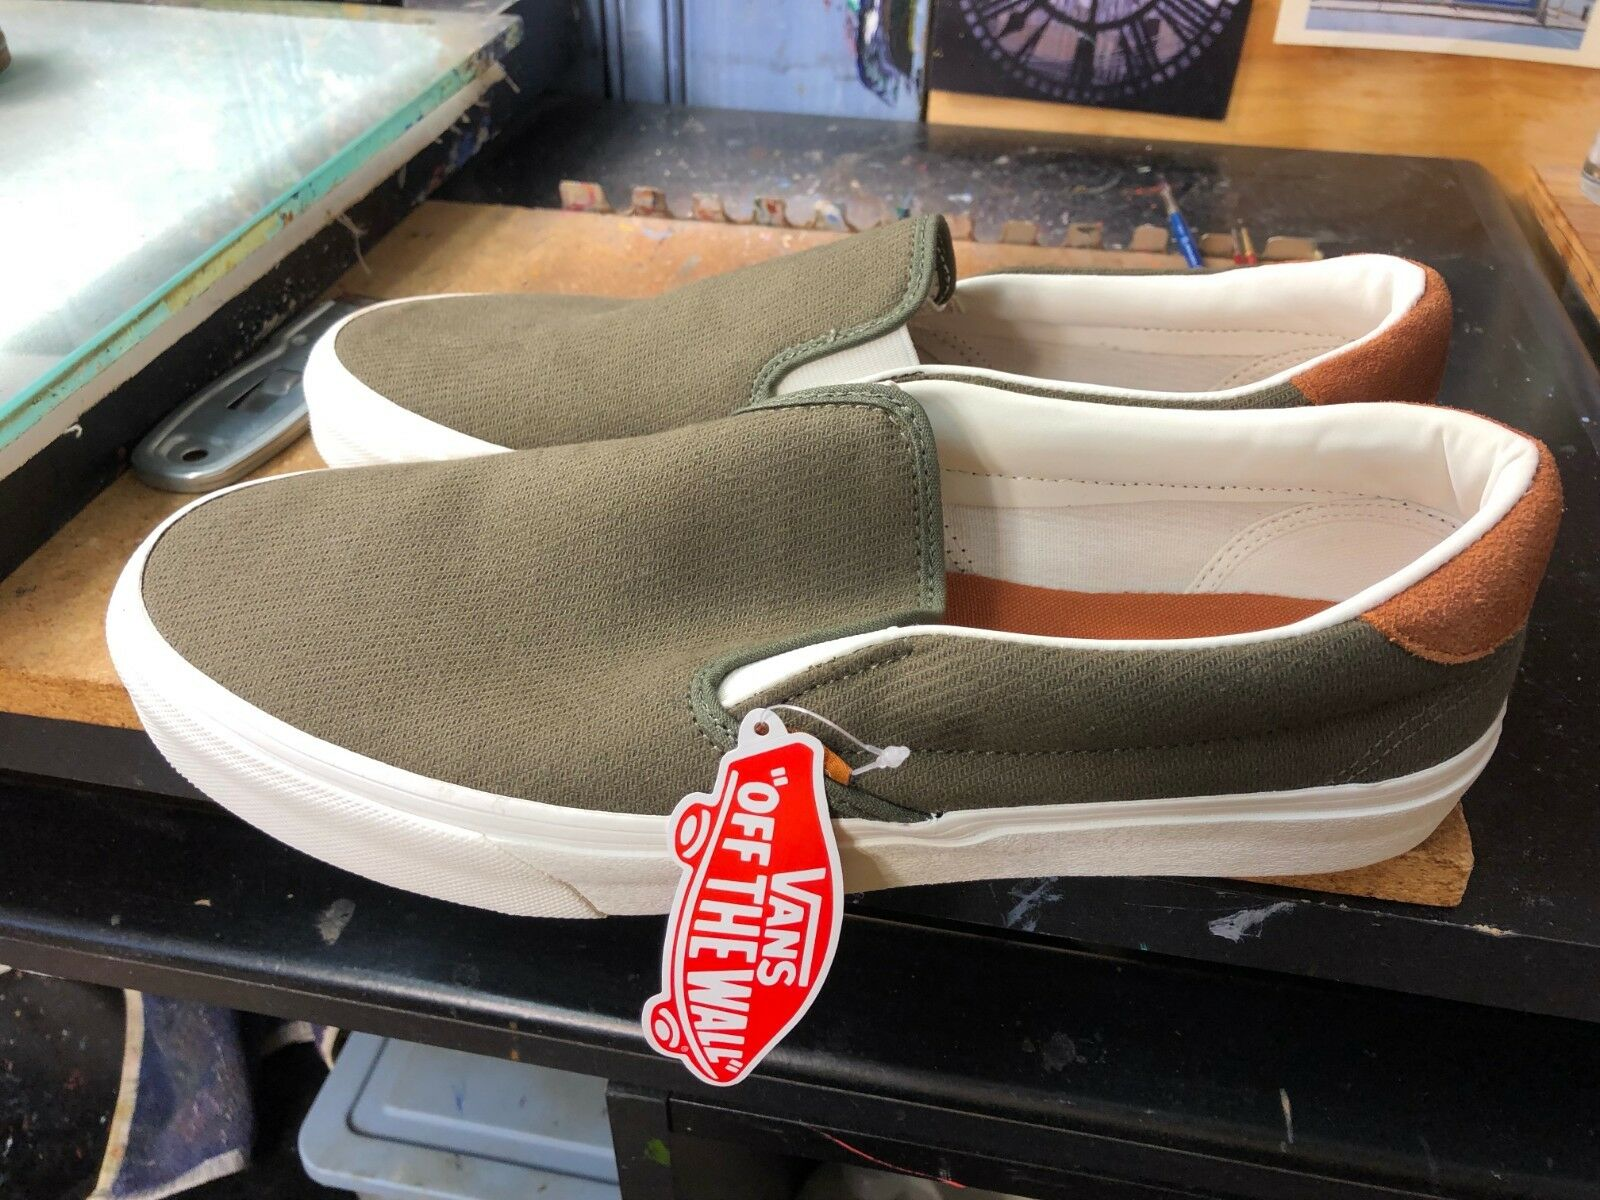 Vans Slip-On 59 (Flannel) Dusty Olive Size US 11 Men's VN0A38GUU4N